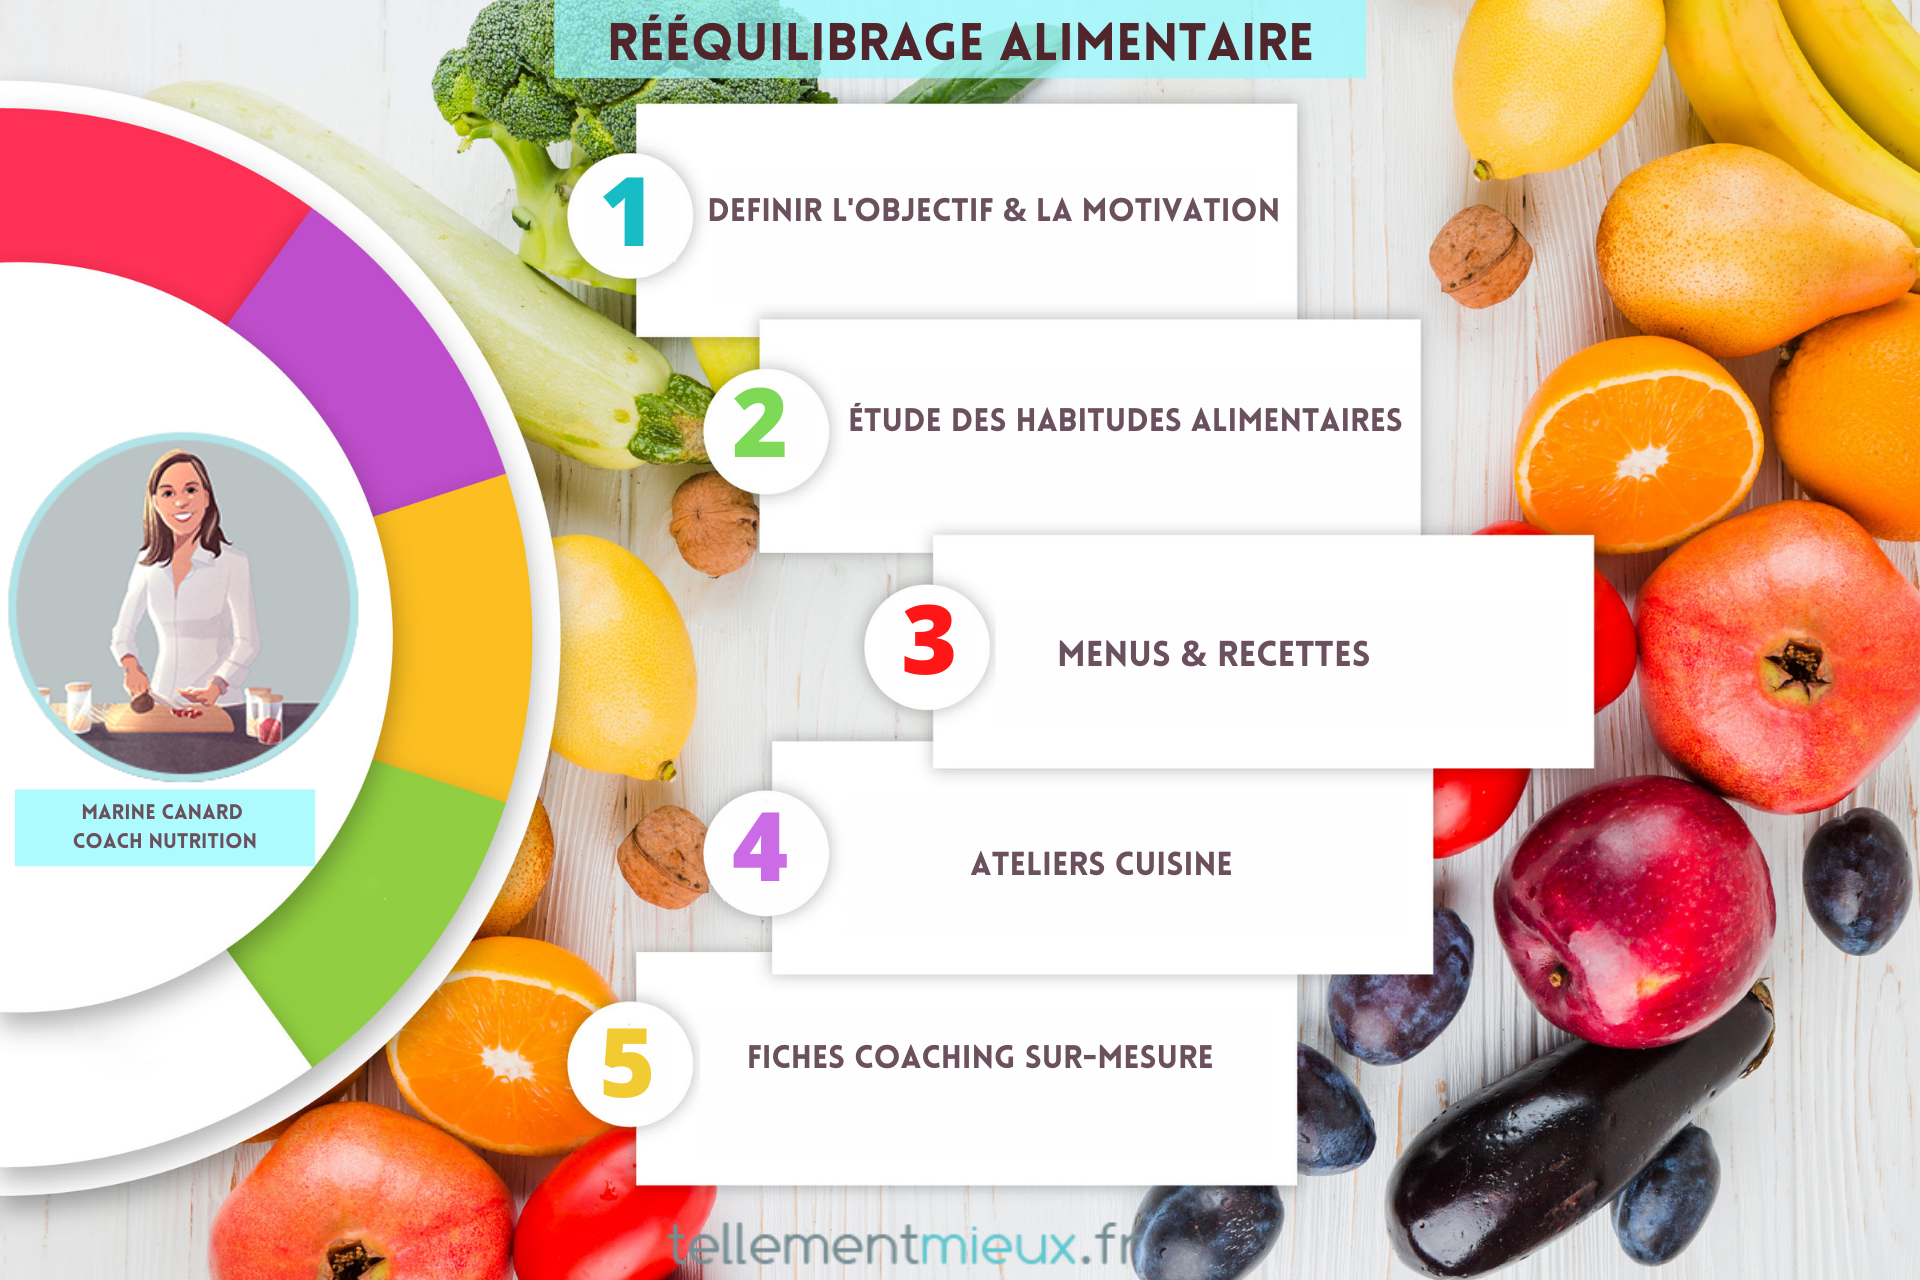 reequilibrage alimentaire coaching